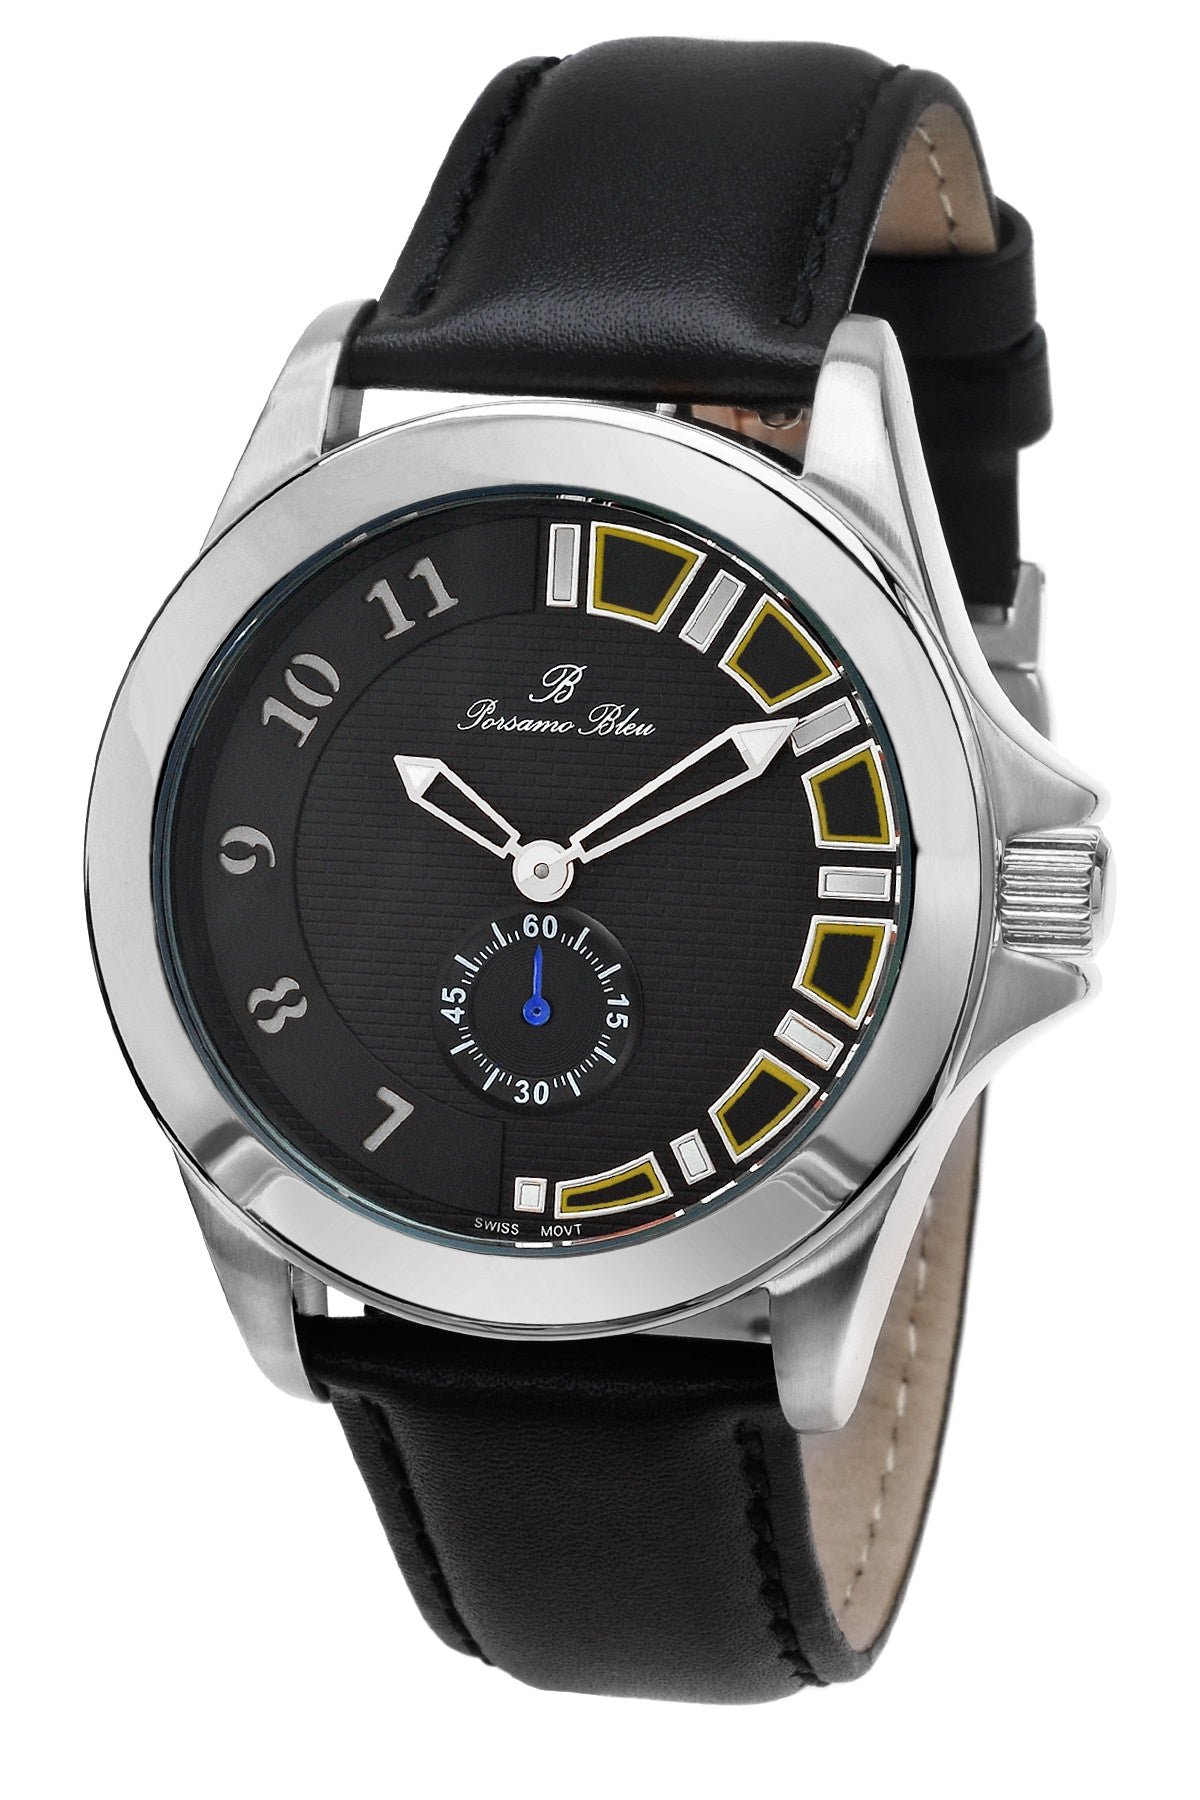 Porsamo Bleu Soho luxury men's dress watch with genuine leather band silver tone and black 041BSOL